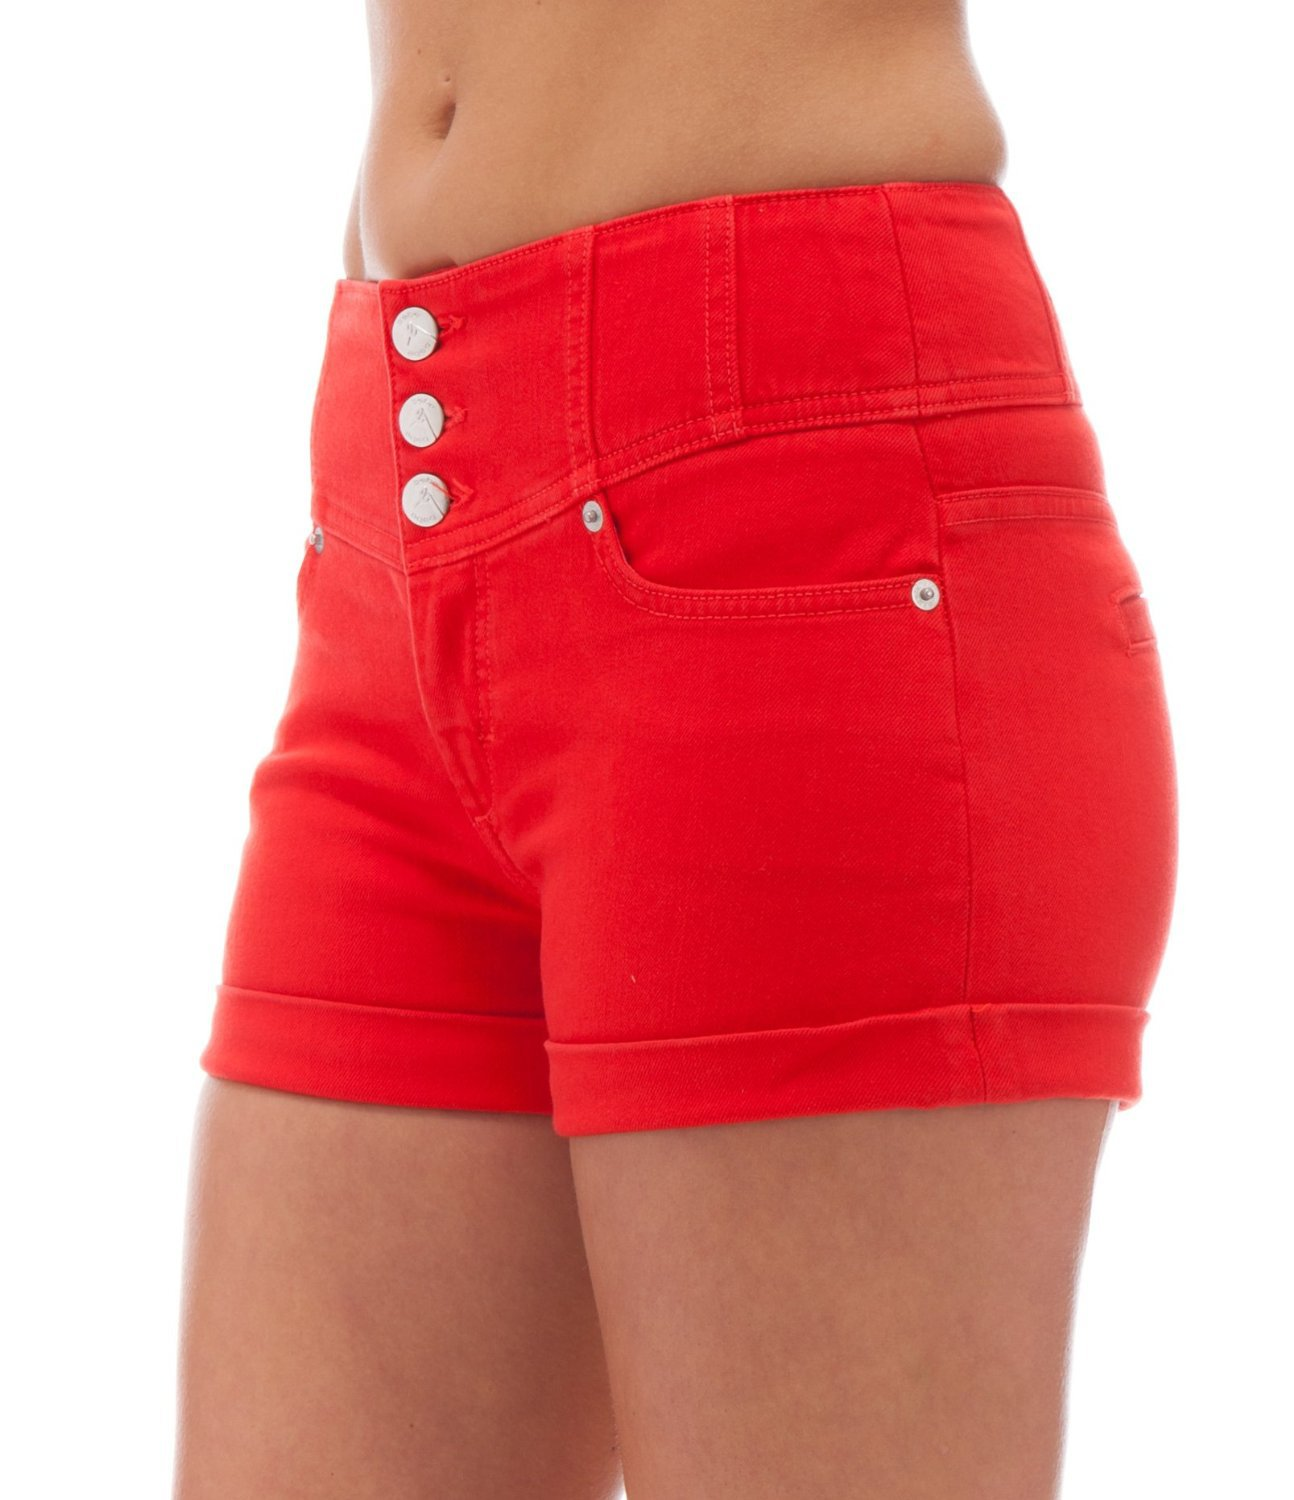 Shorts for Juniors. Complete any outfit with a trendy pair of juniors shorts from Kohl's. No matter the style, Kohl's has just what she's looking for! We have all the juniors shorts she loves, including junior khaki shorts, which are ideal for her everyday wardrobe.